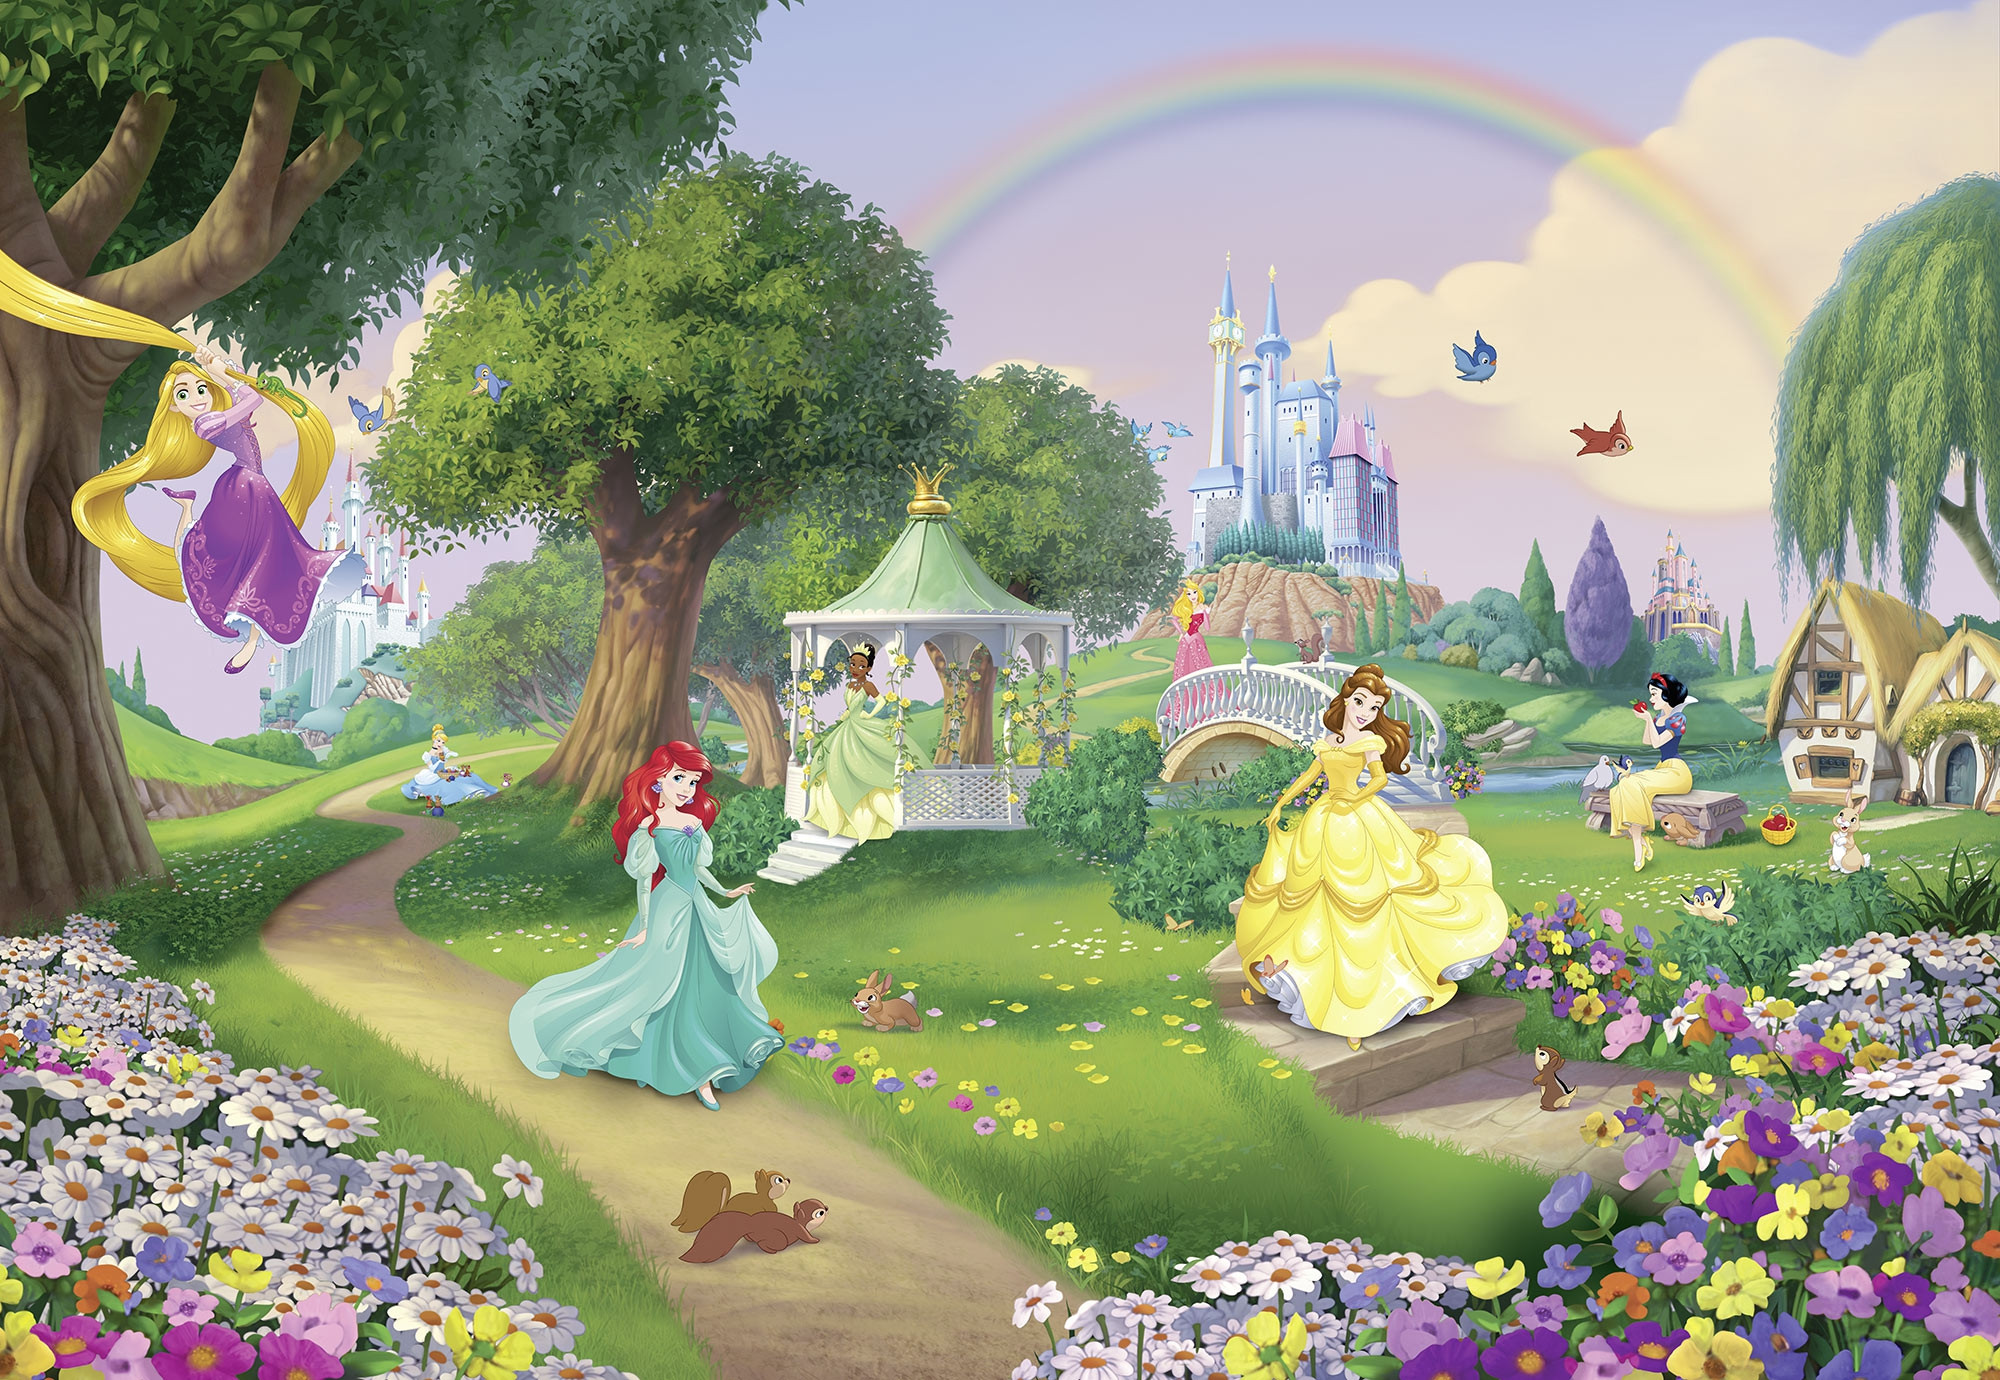 Photomural Quot Princess Rainbow Quot From Disney Photomural Com